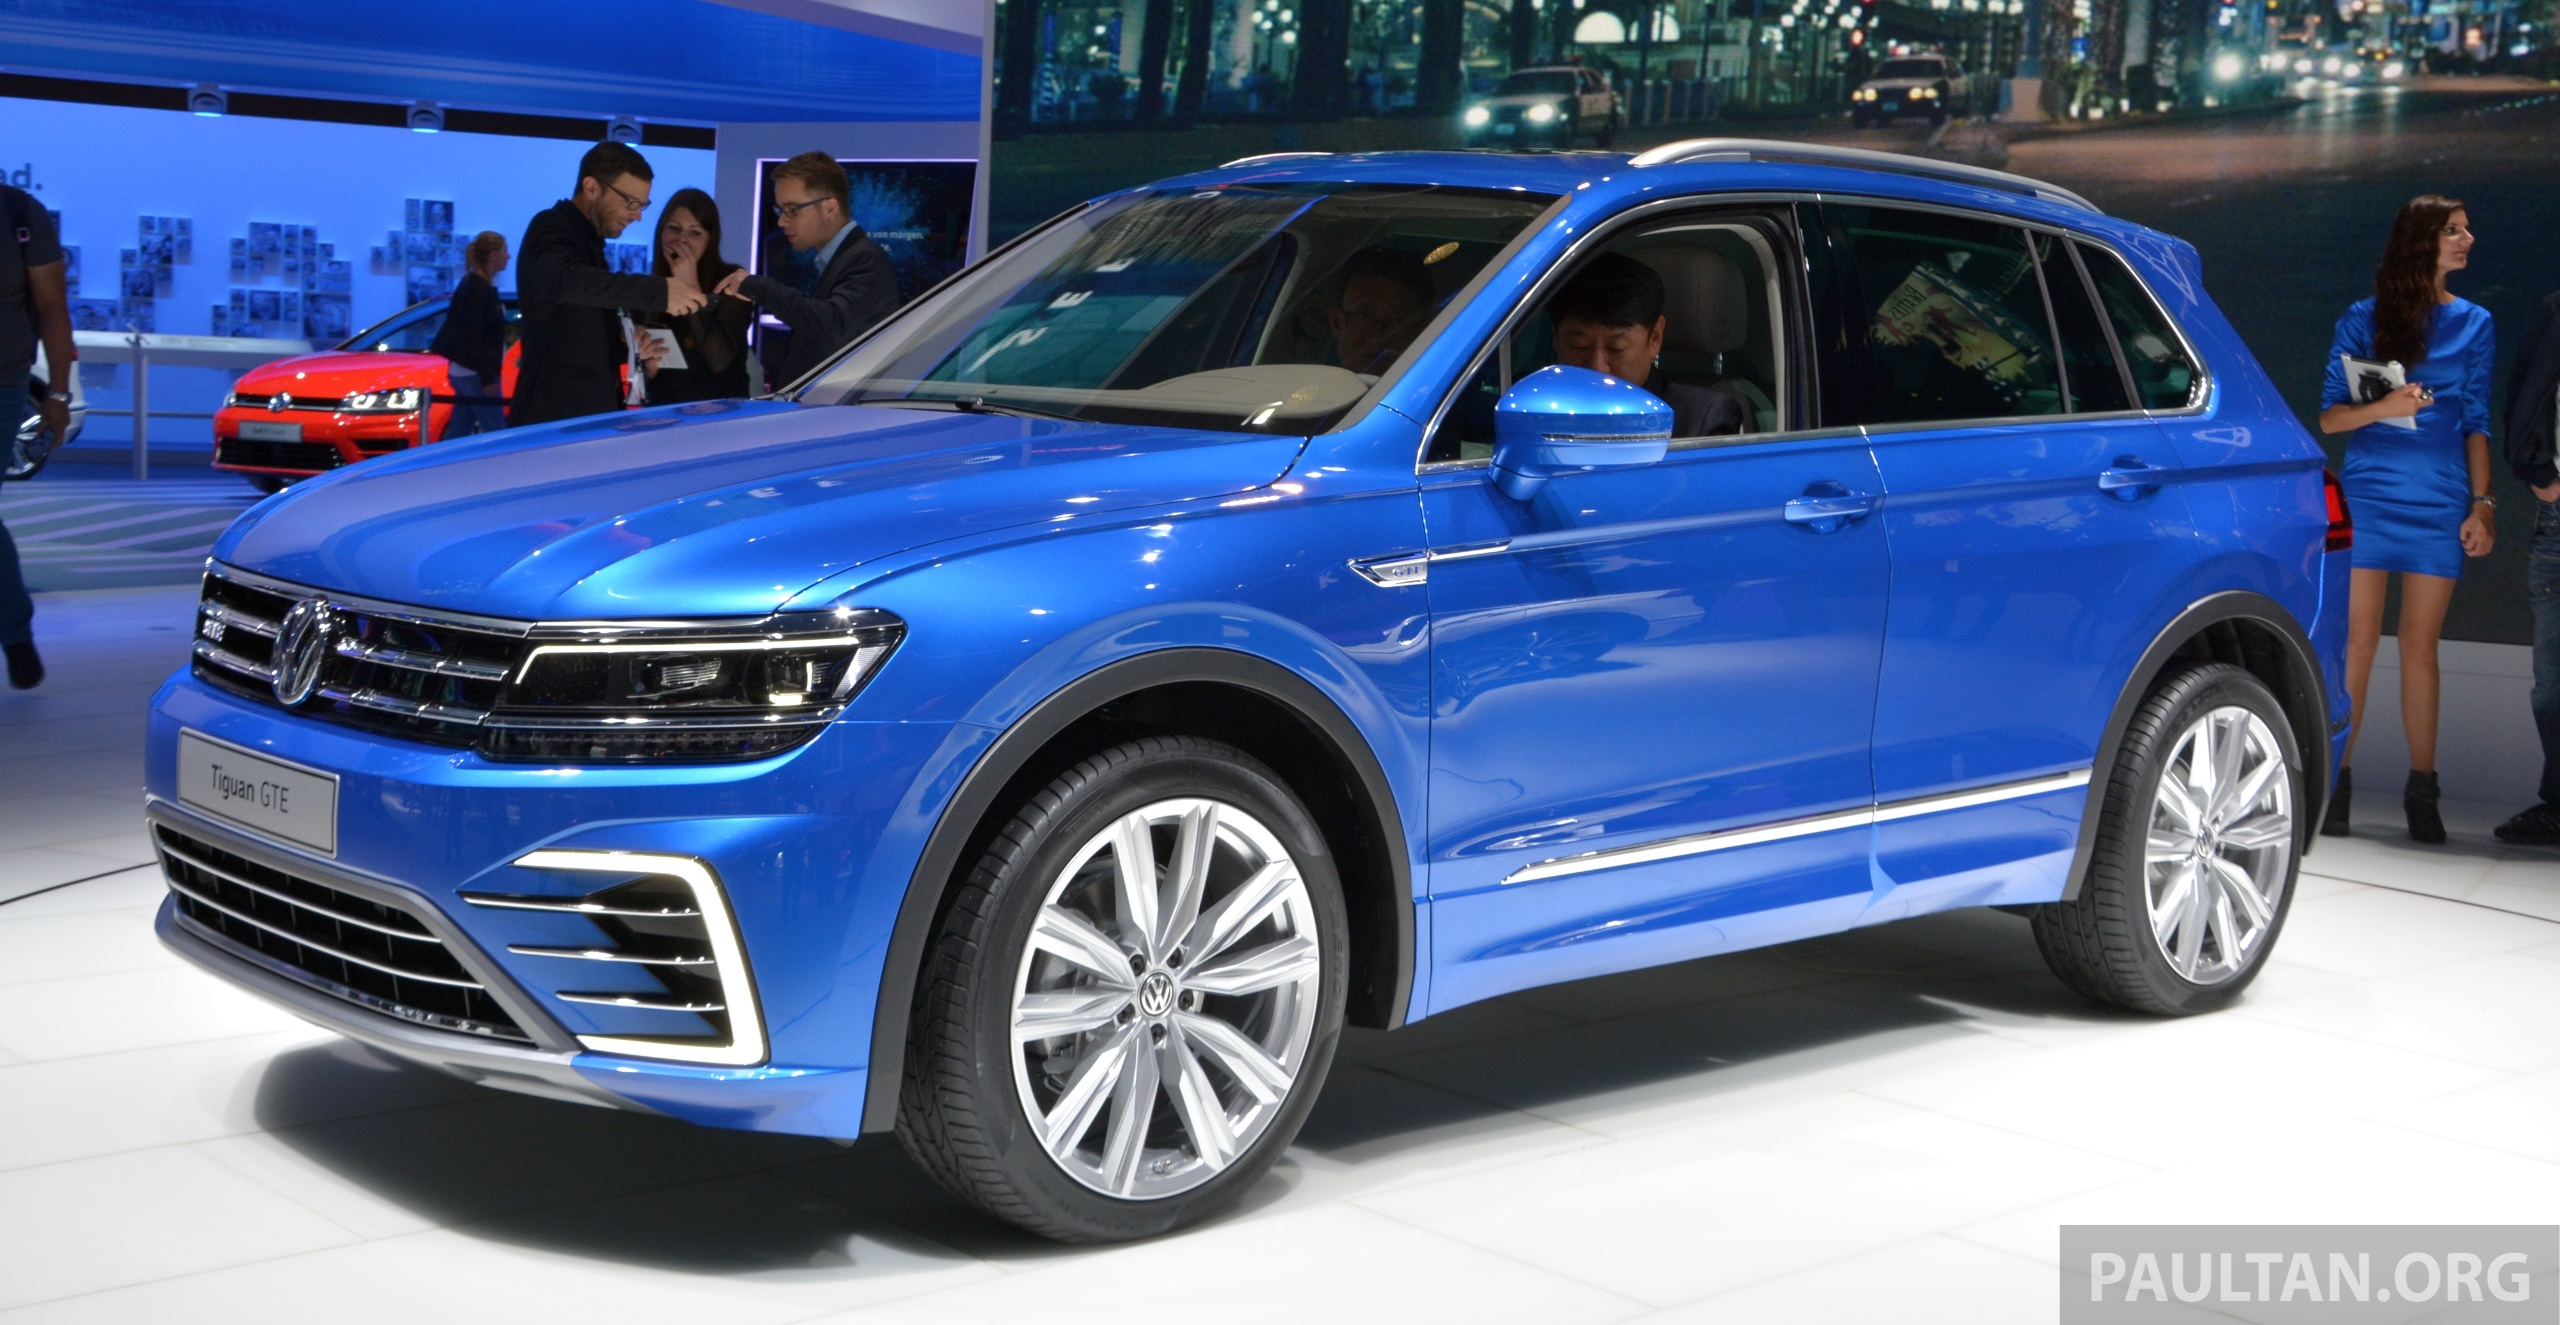 gallery volkswagen tiguan gte and r line at iaa paul tan image 380901. Black Bedroom Furniture Sets. Home Design Ideas